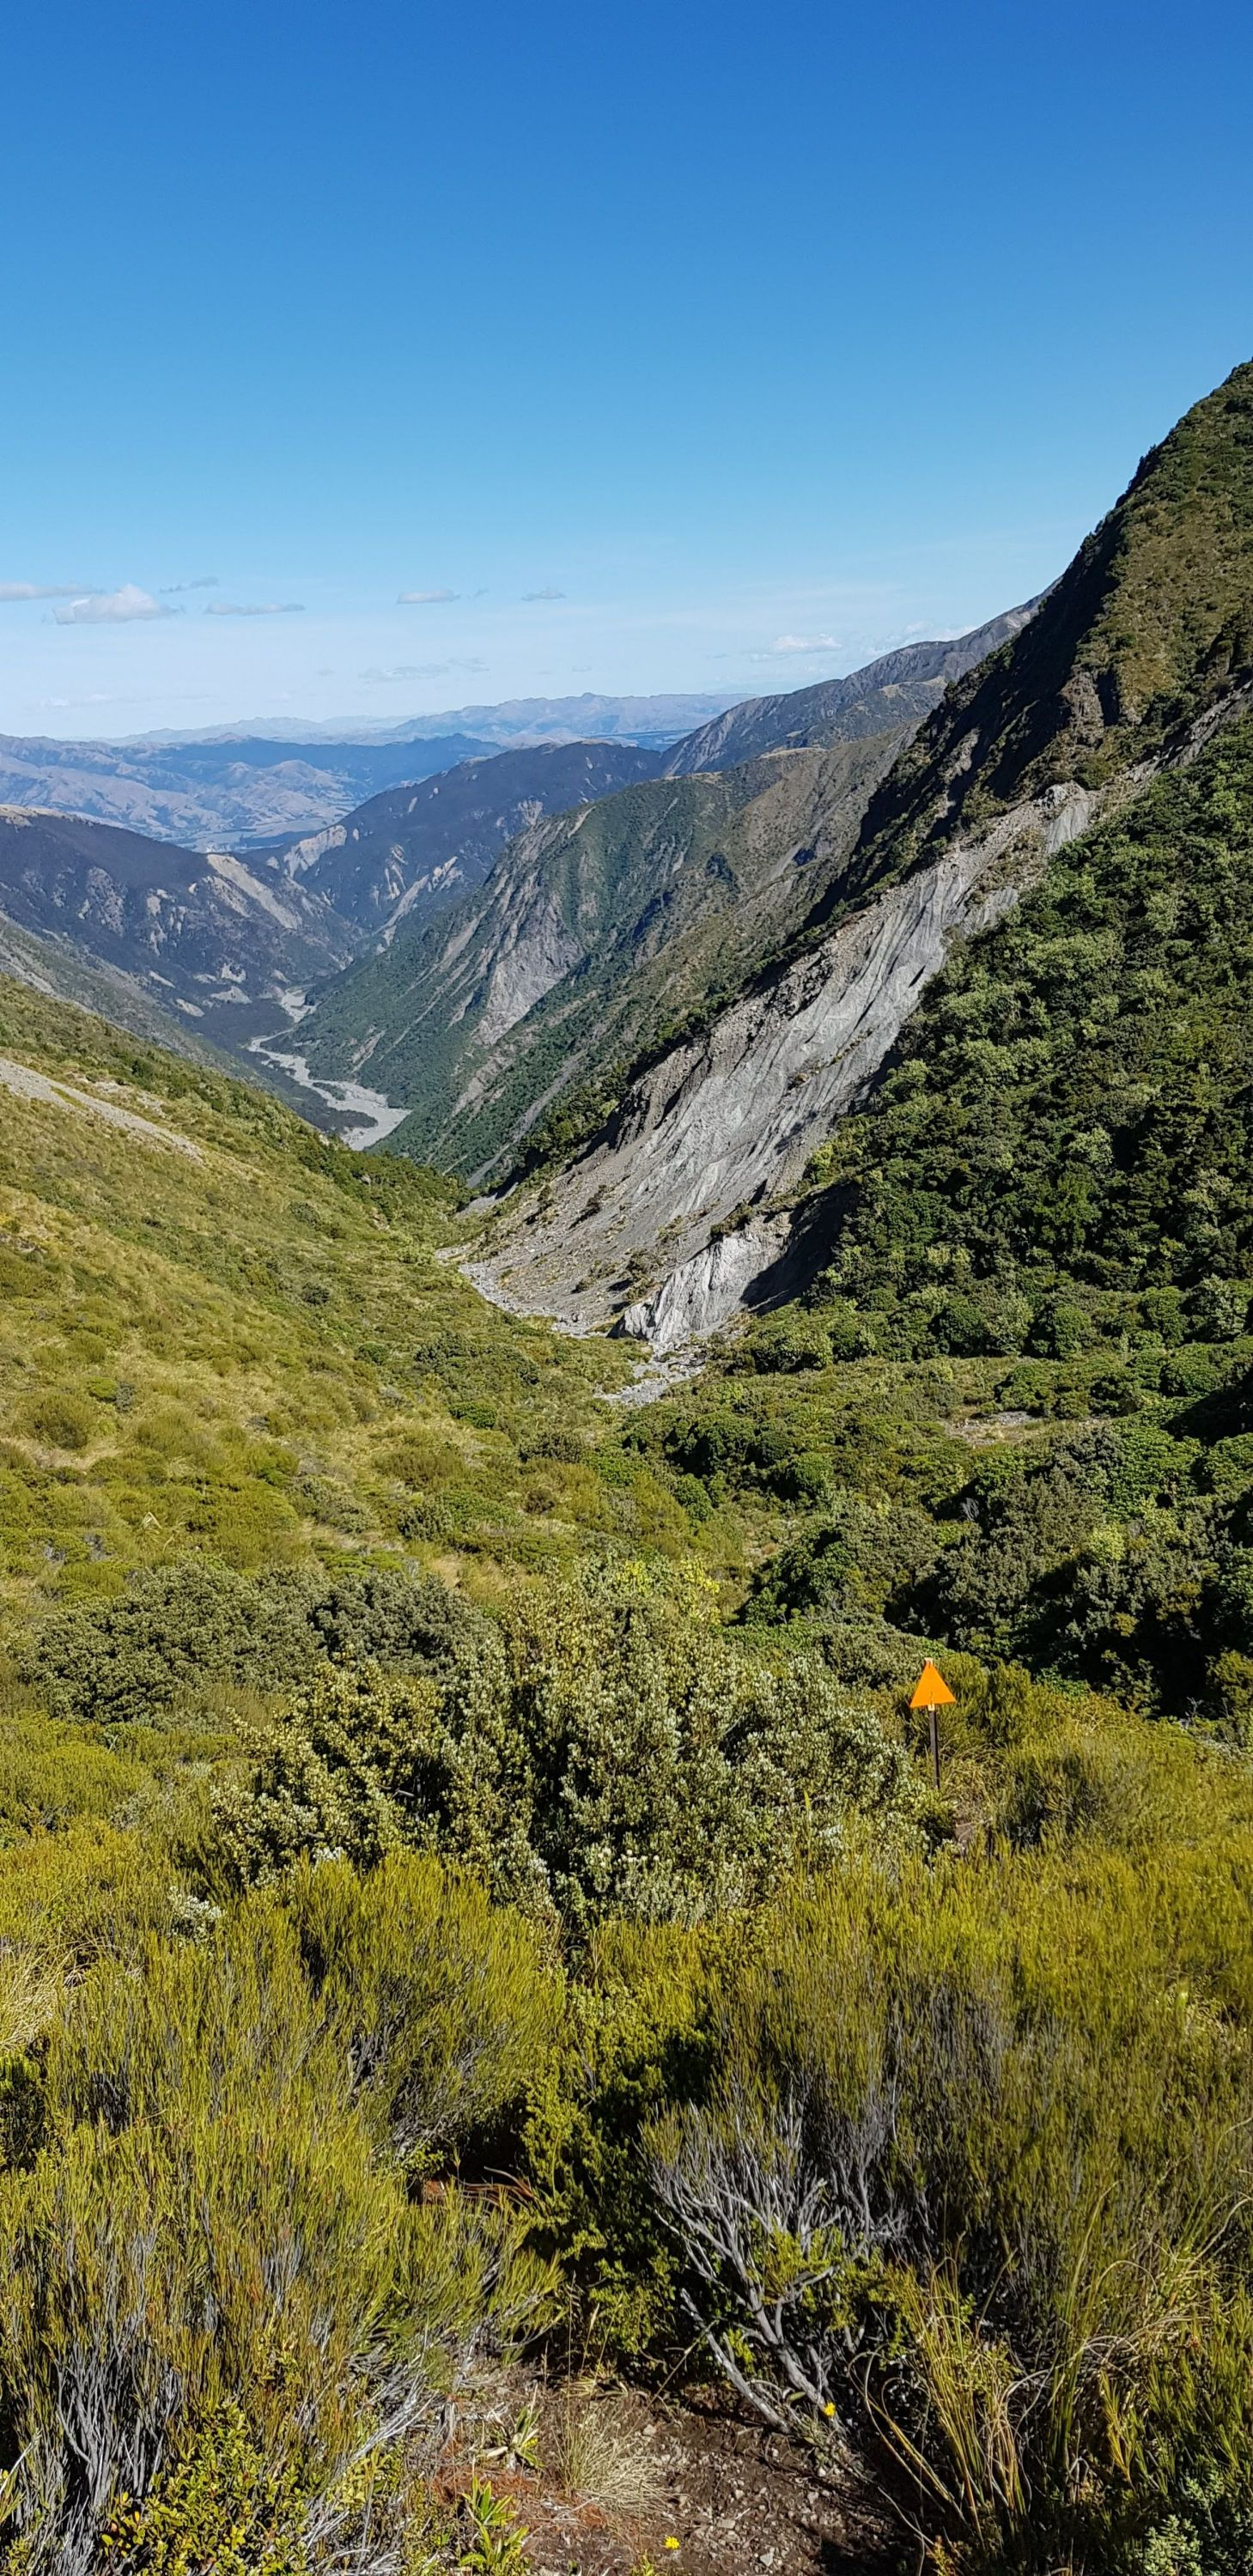 Mt Fyffe-Kowhai Saddle circuit by Kevin Holland